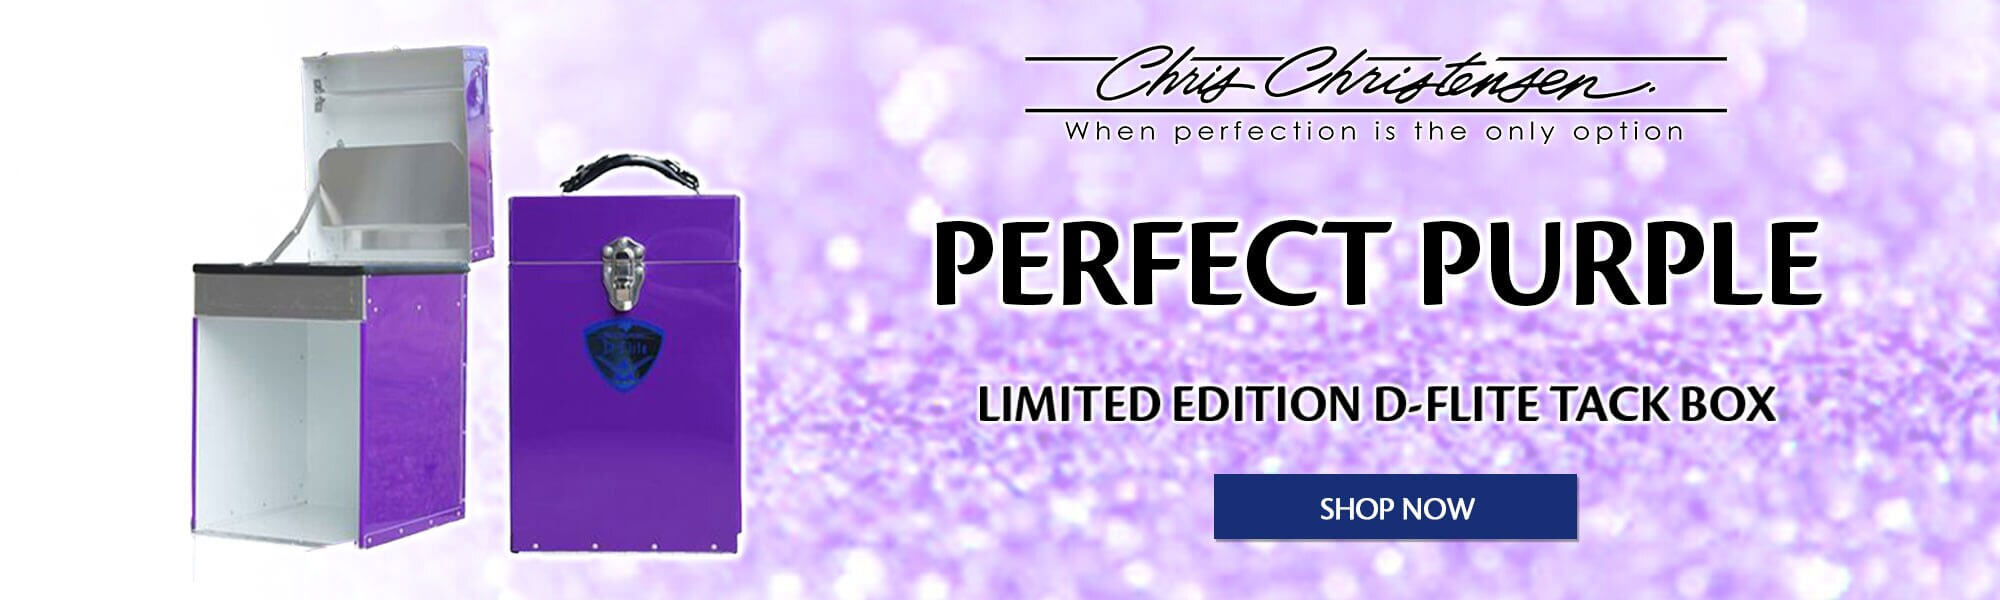 Perfect Purple Limited Edition Tack Box